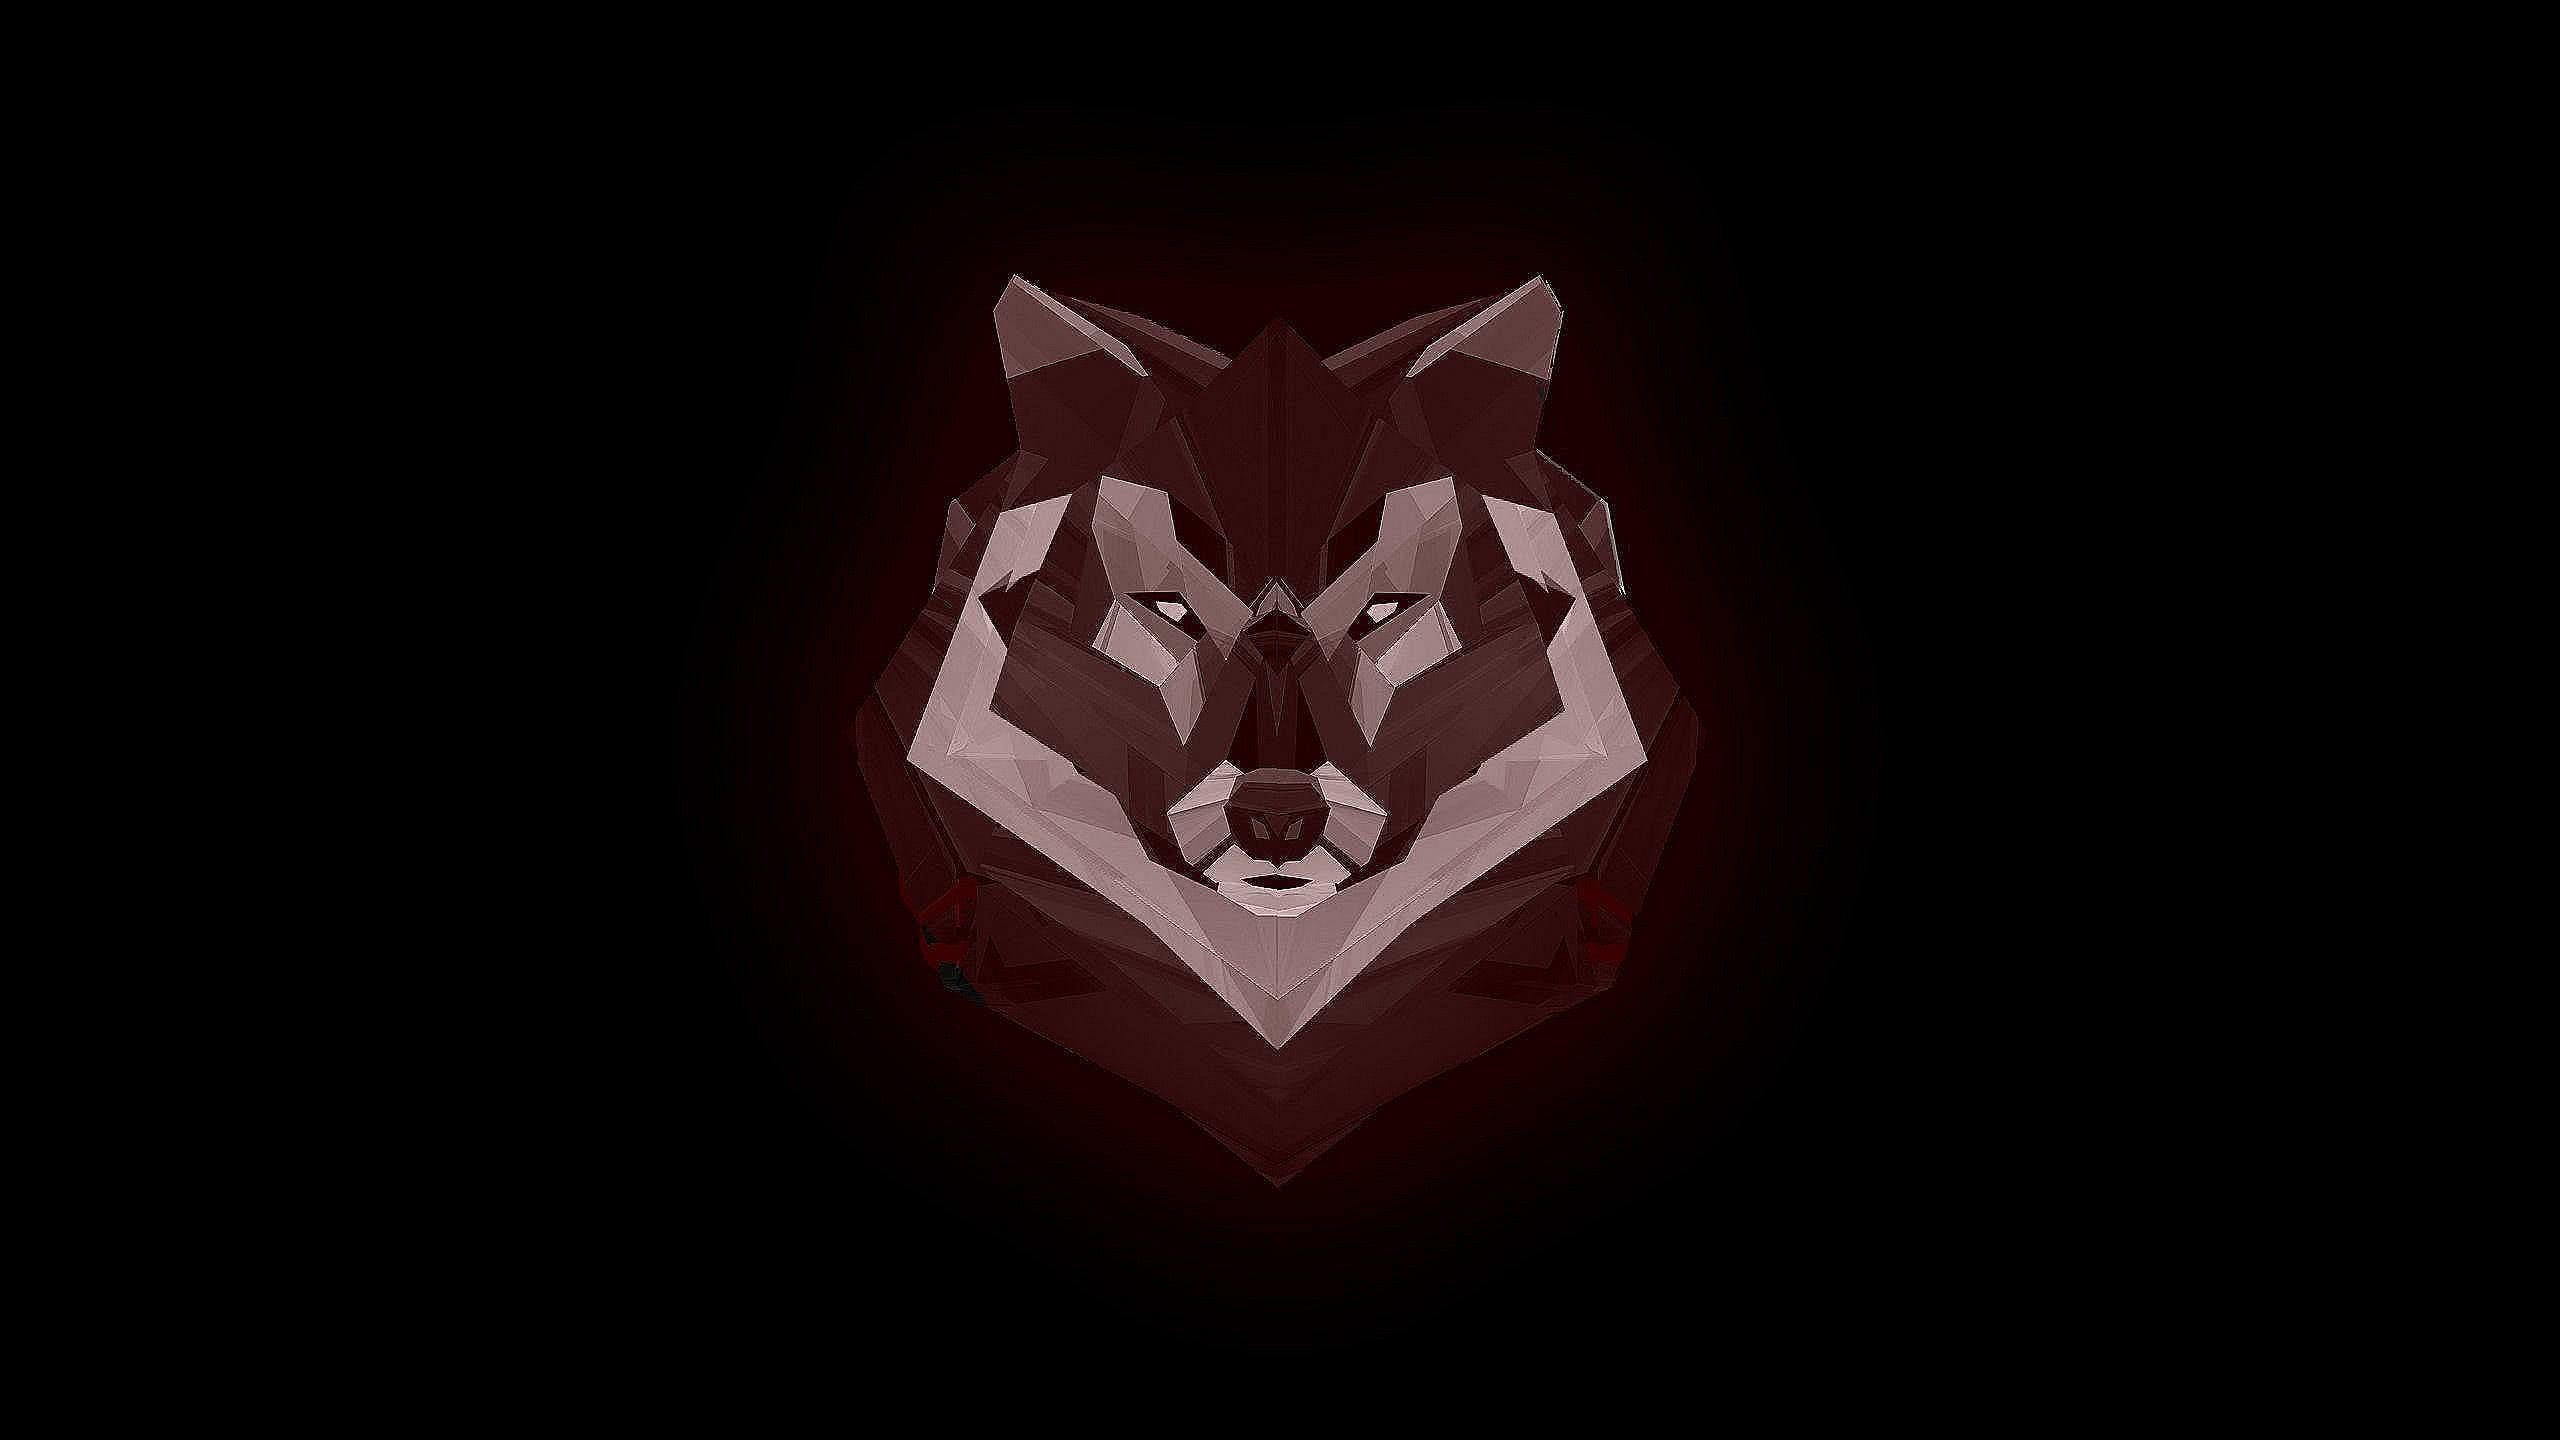 Wolf Gaming Wallpapers